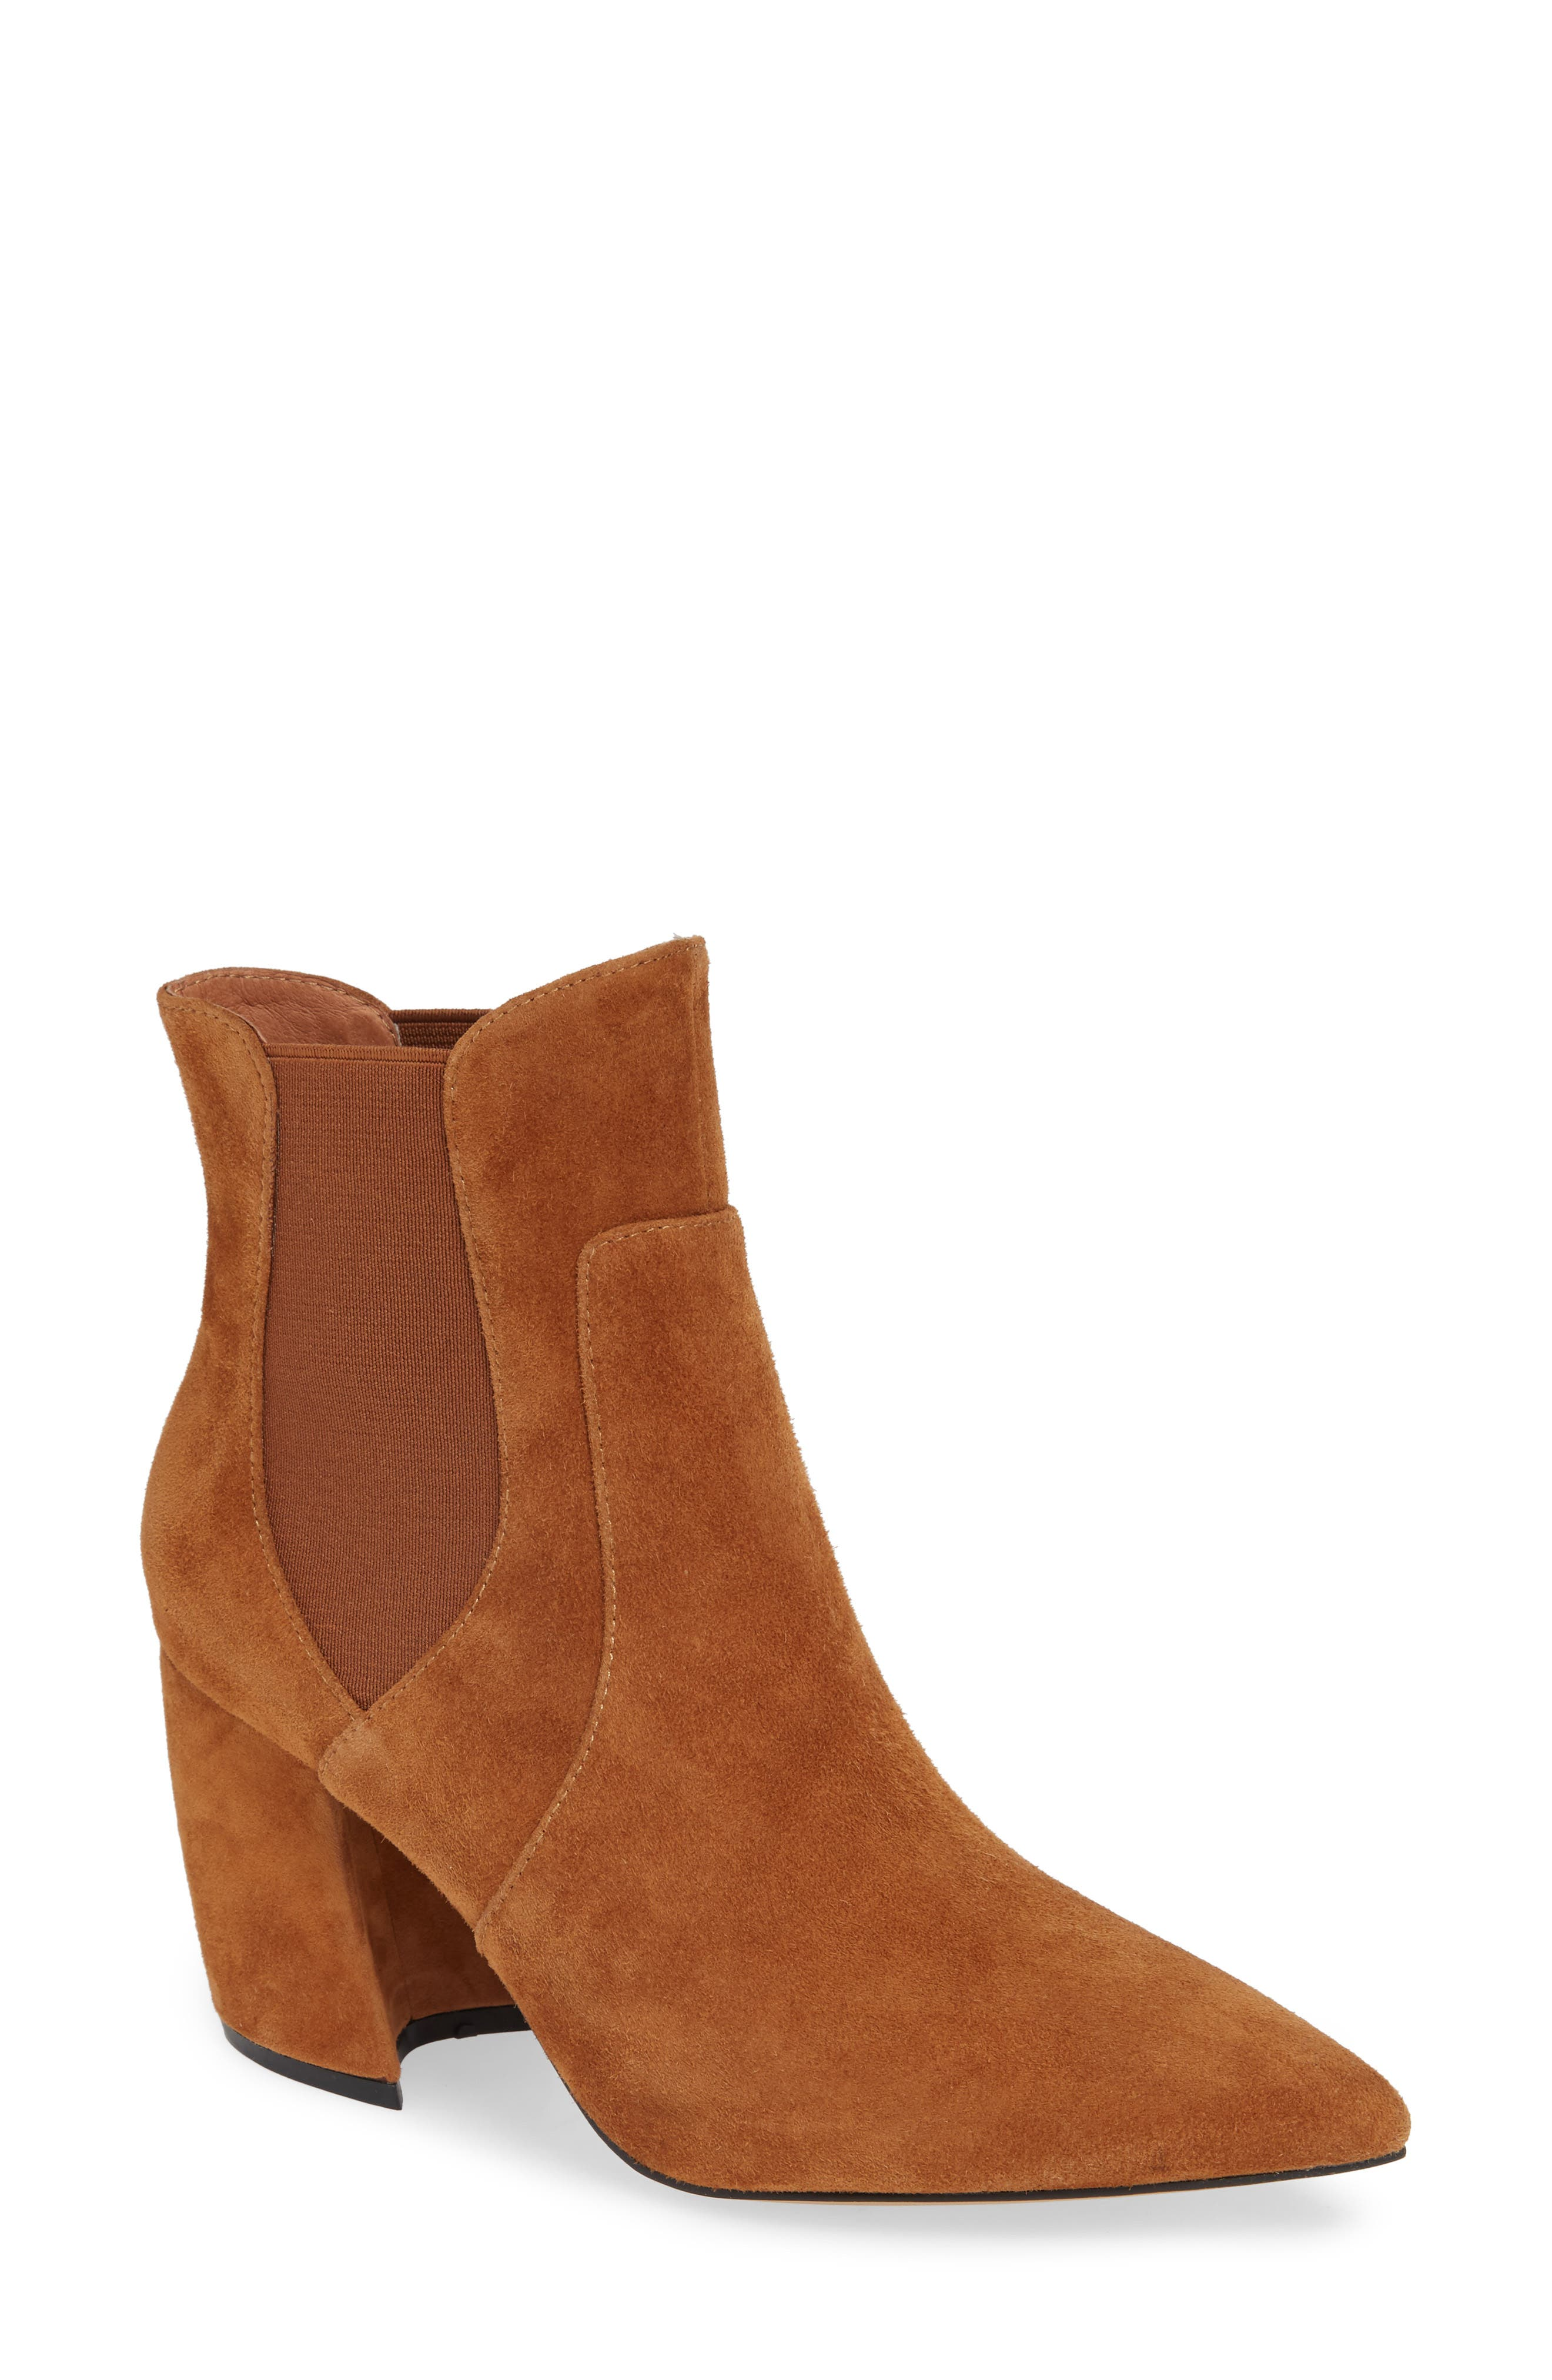 Akilina Bootie in Tan Suede